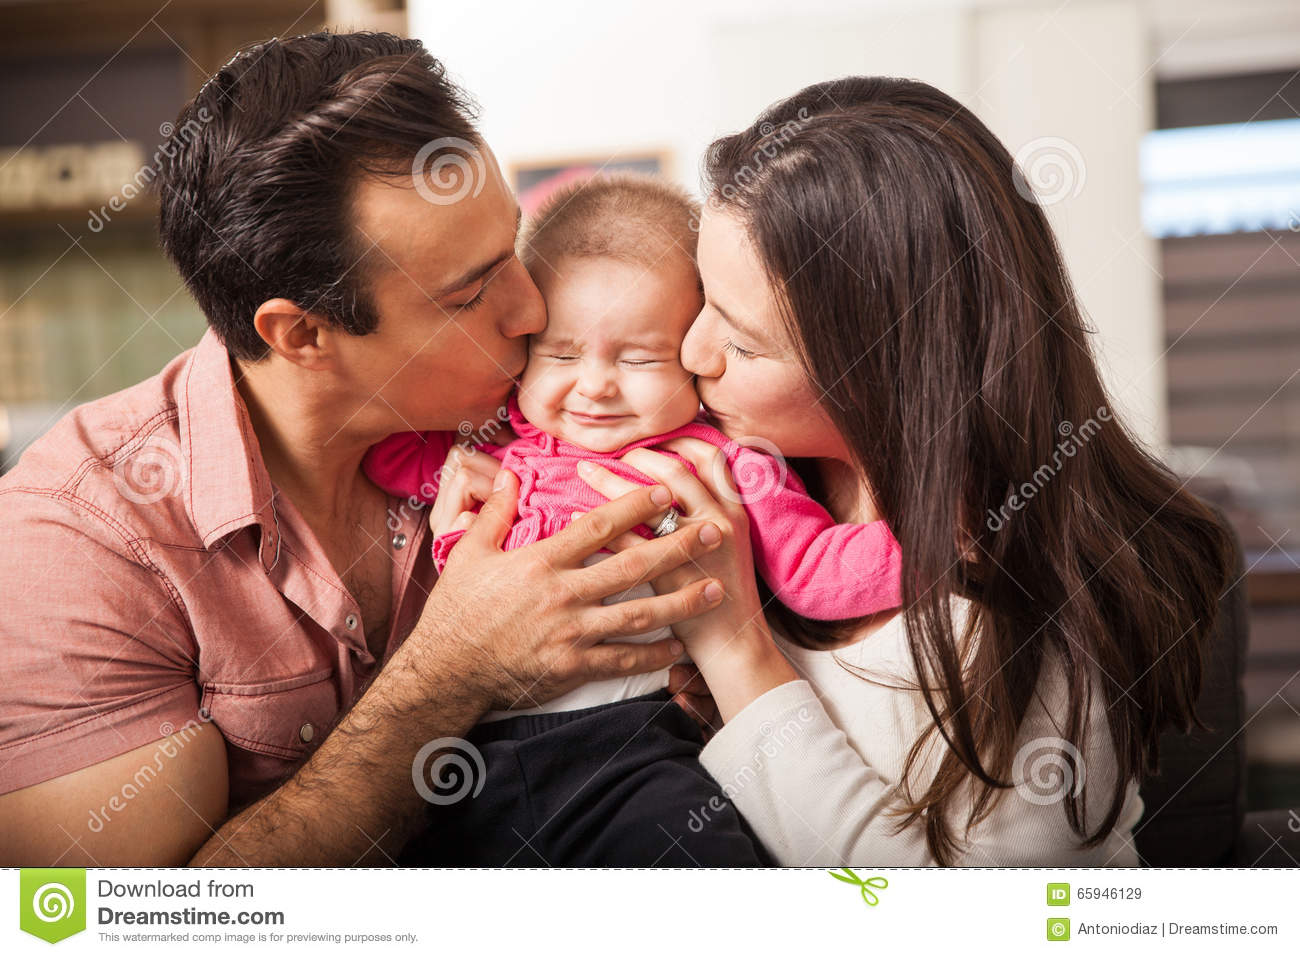 41d98aeb0 Cute baby girl being kissed by both their parents at the same time